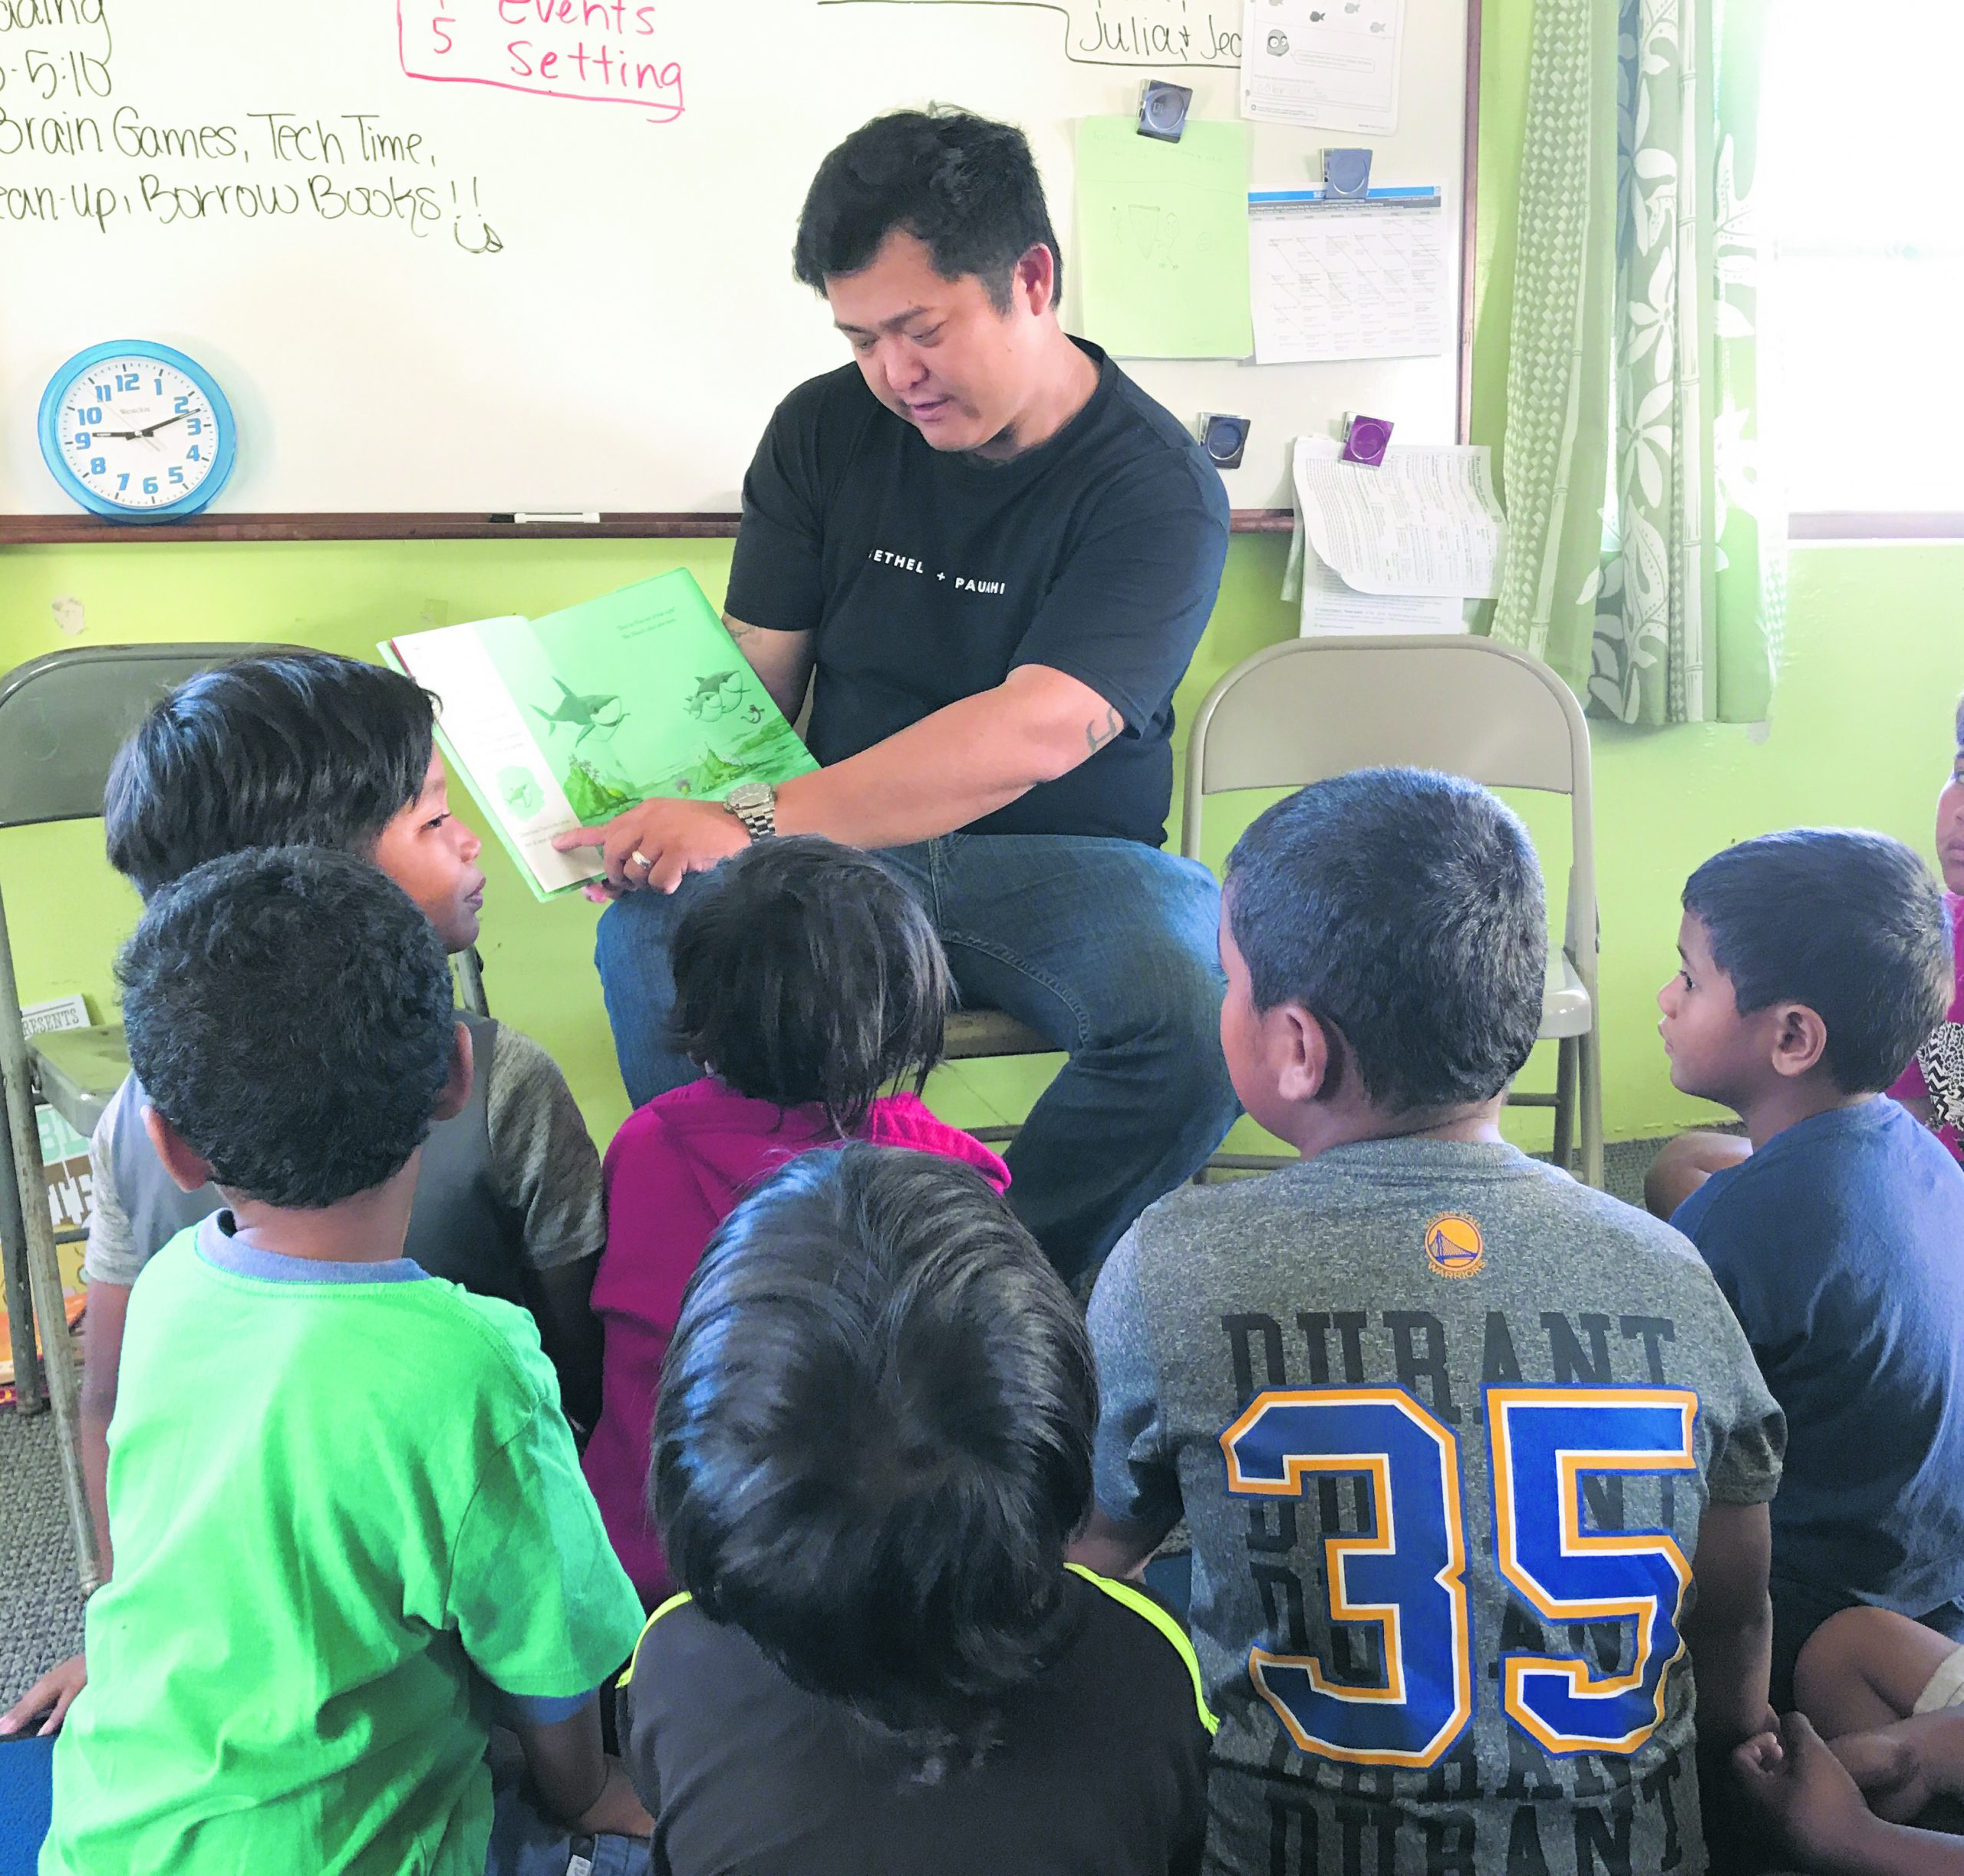 A HIHO volunteer reads to children.